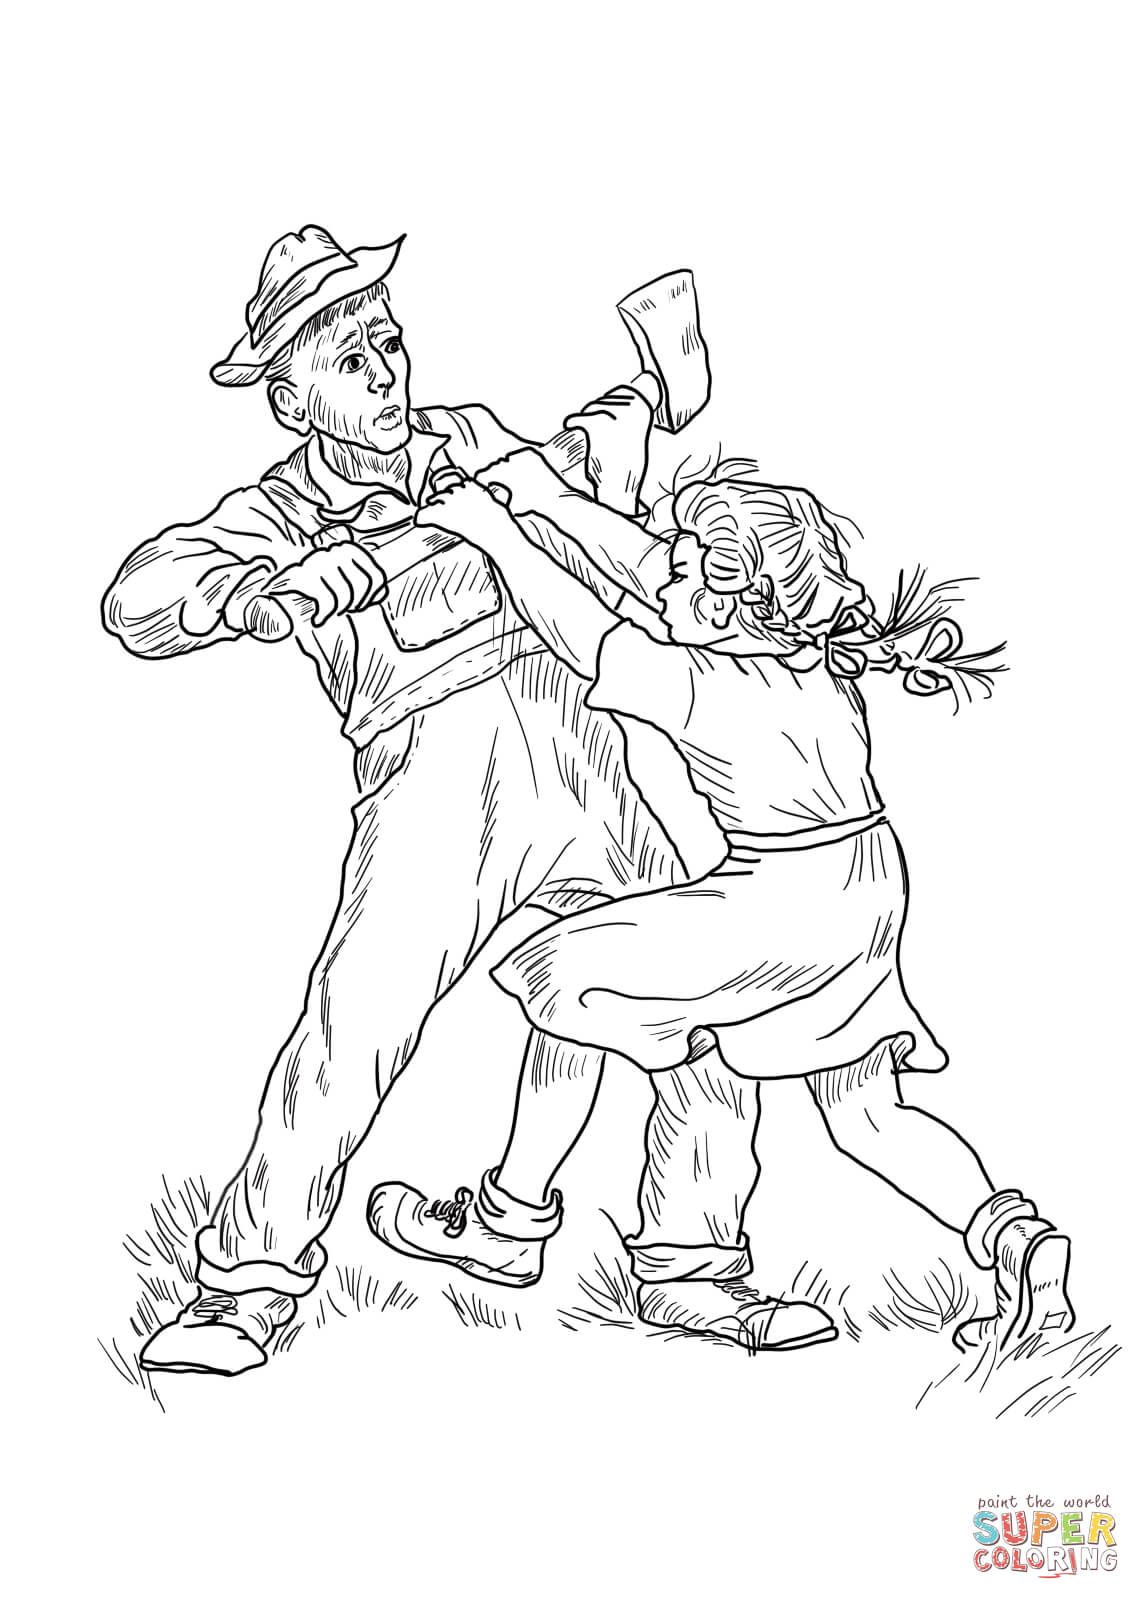 Fern Saves Wilbur Coloring Page From Charlotte S Web Category Select From Printable